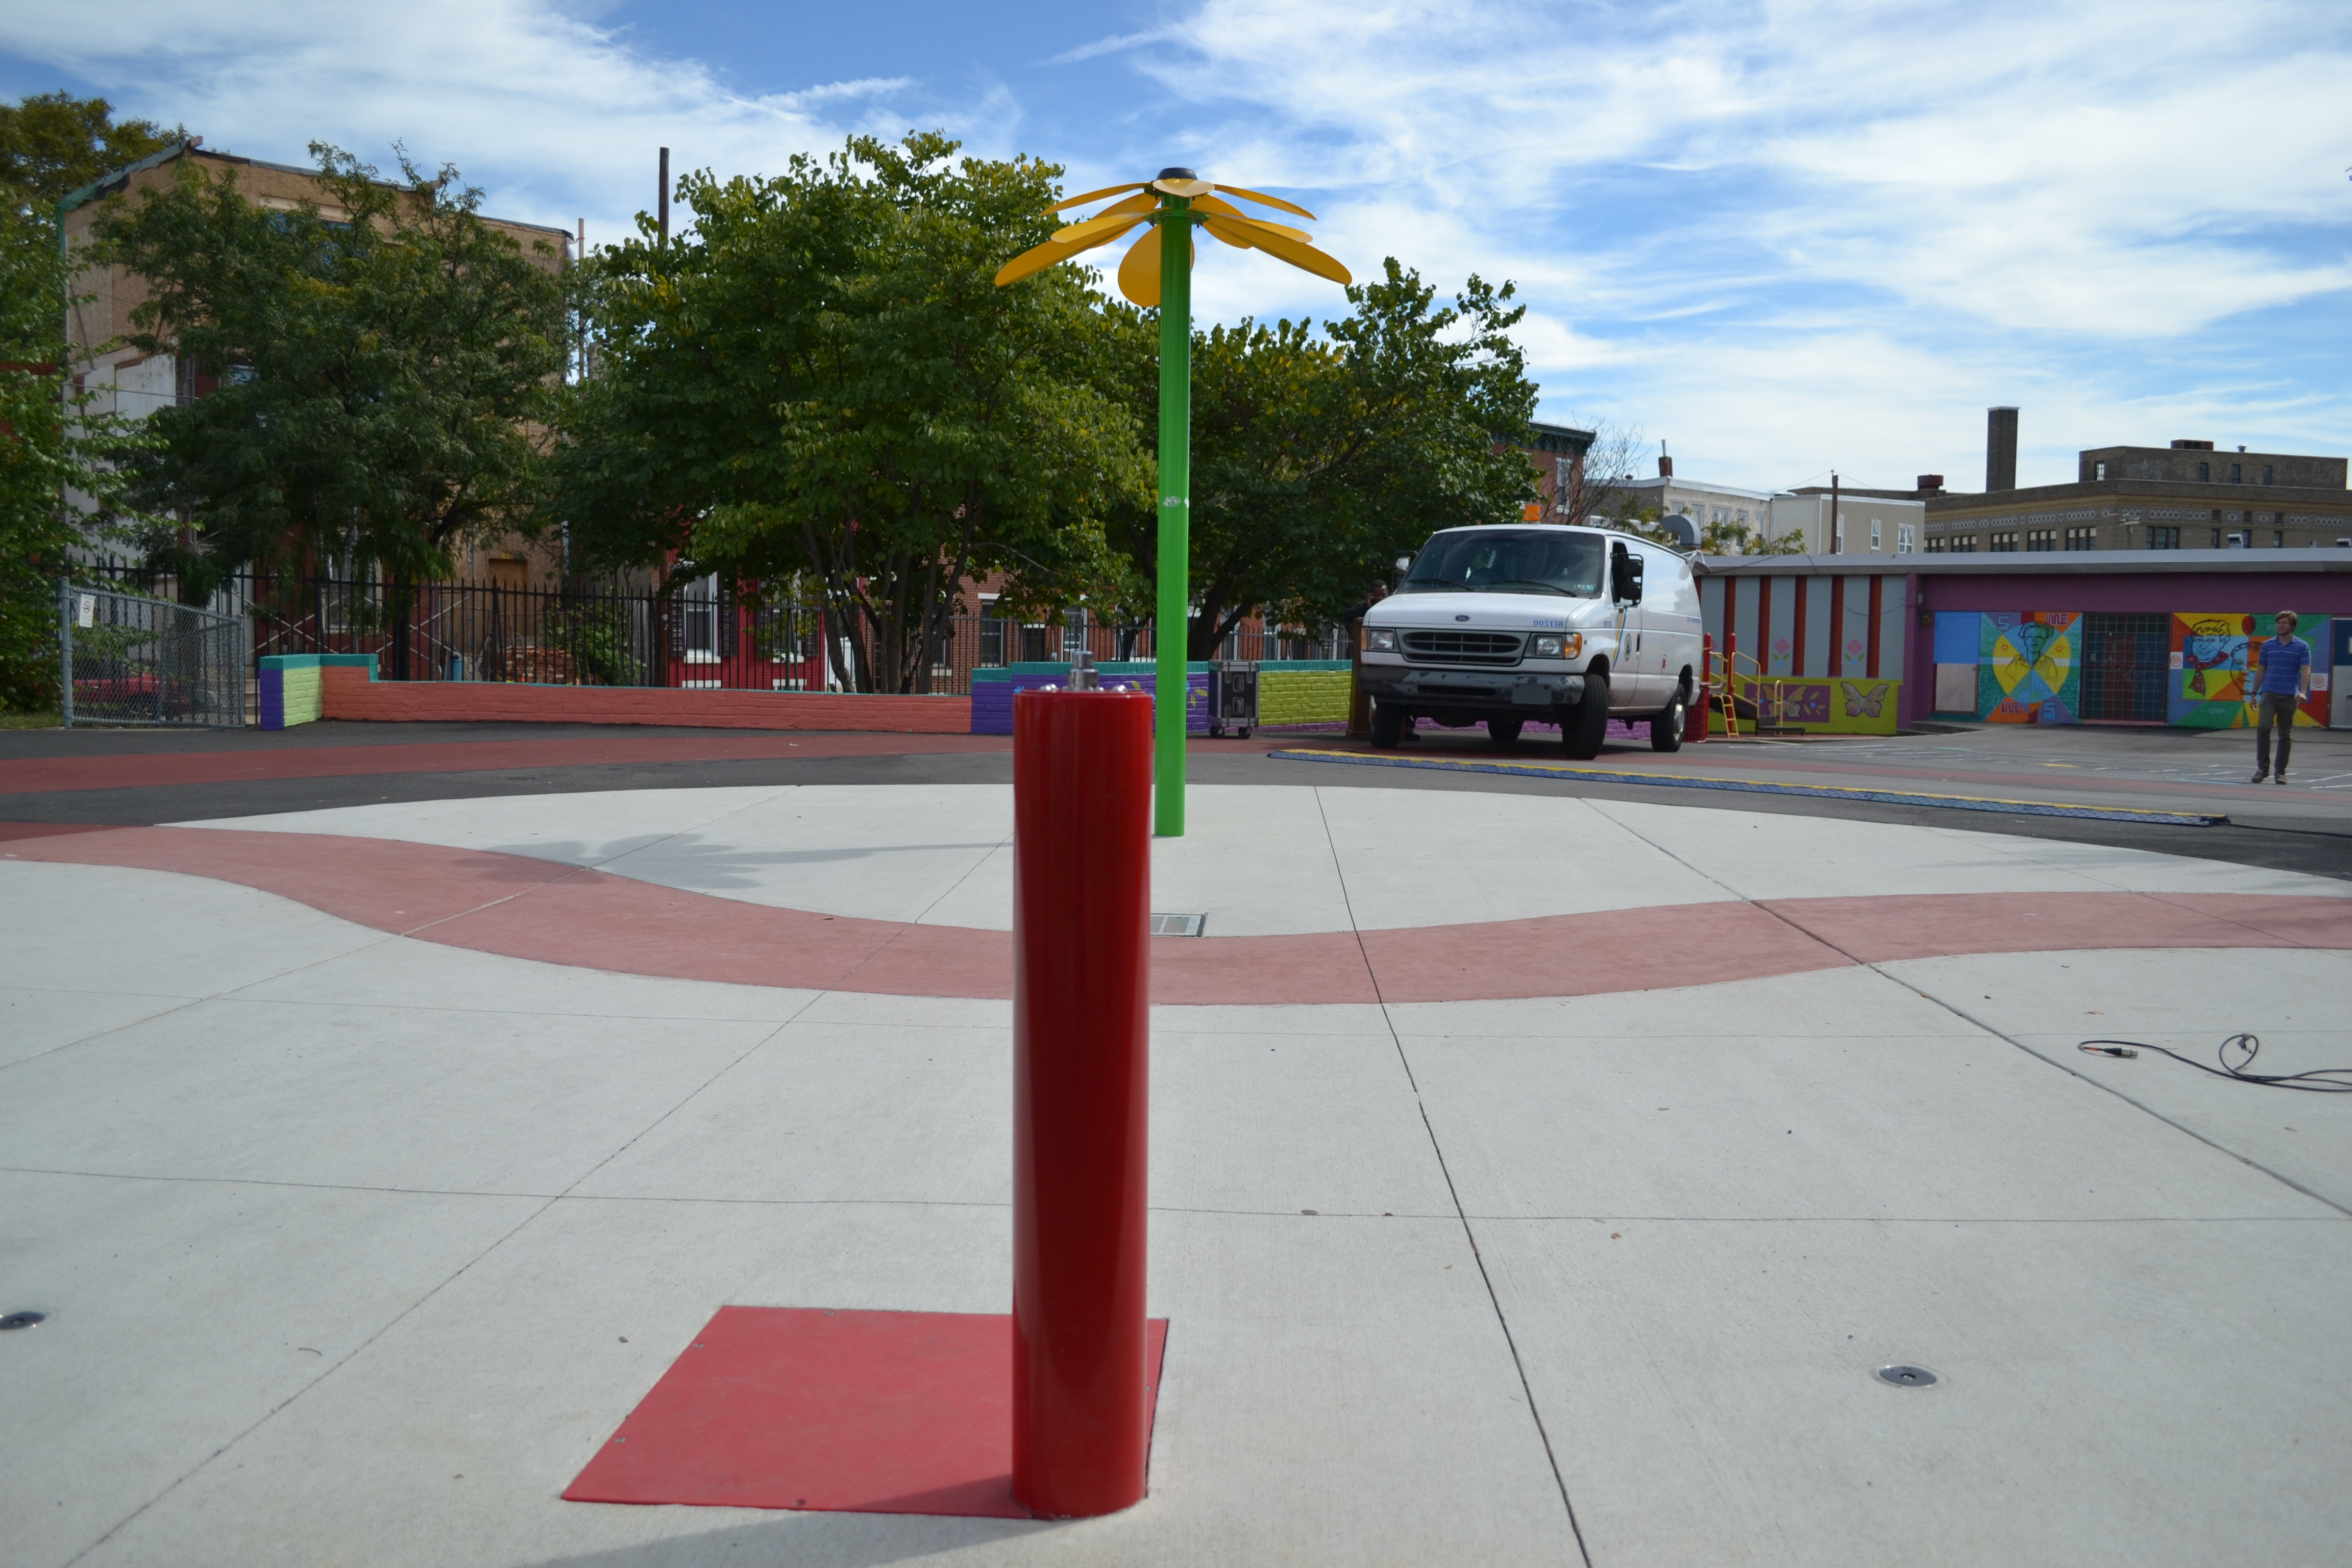 The renovated sprayground will be operated by a push button to conserve water